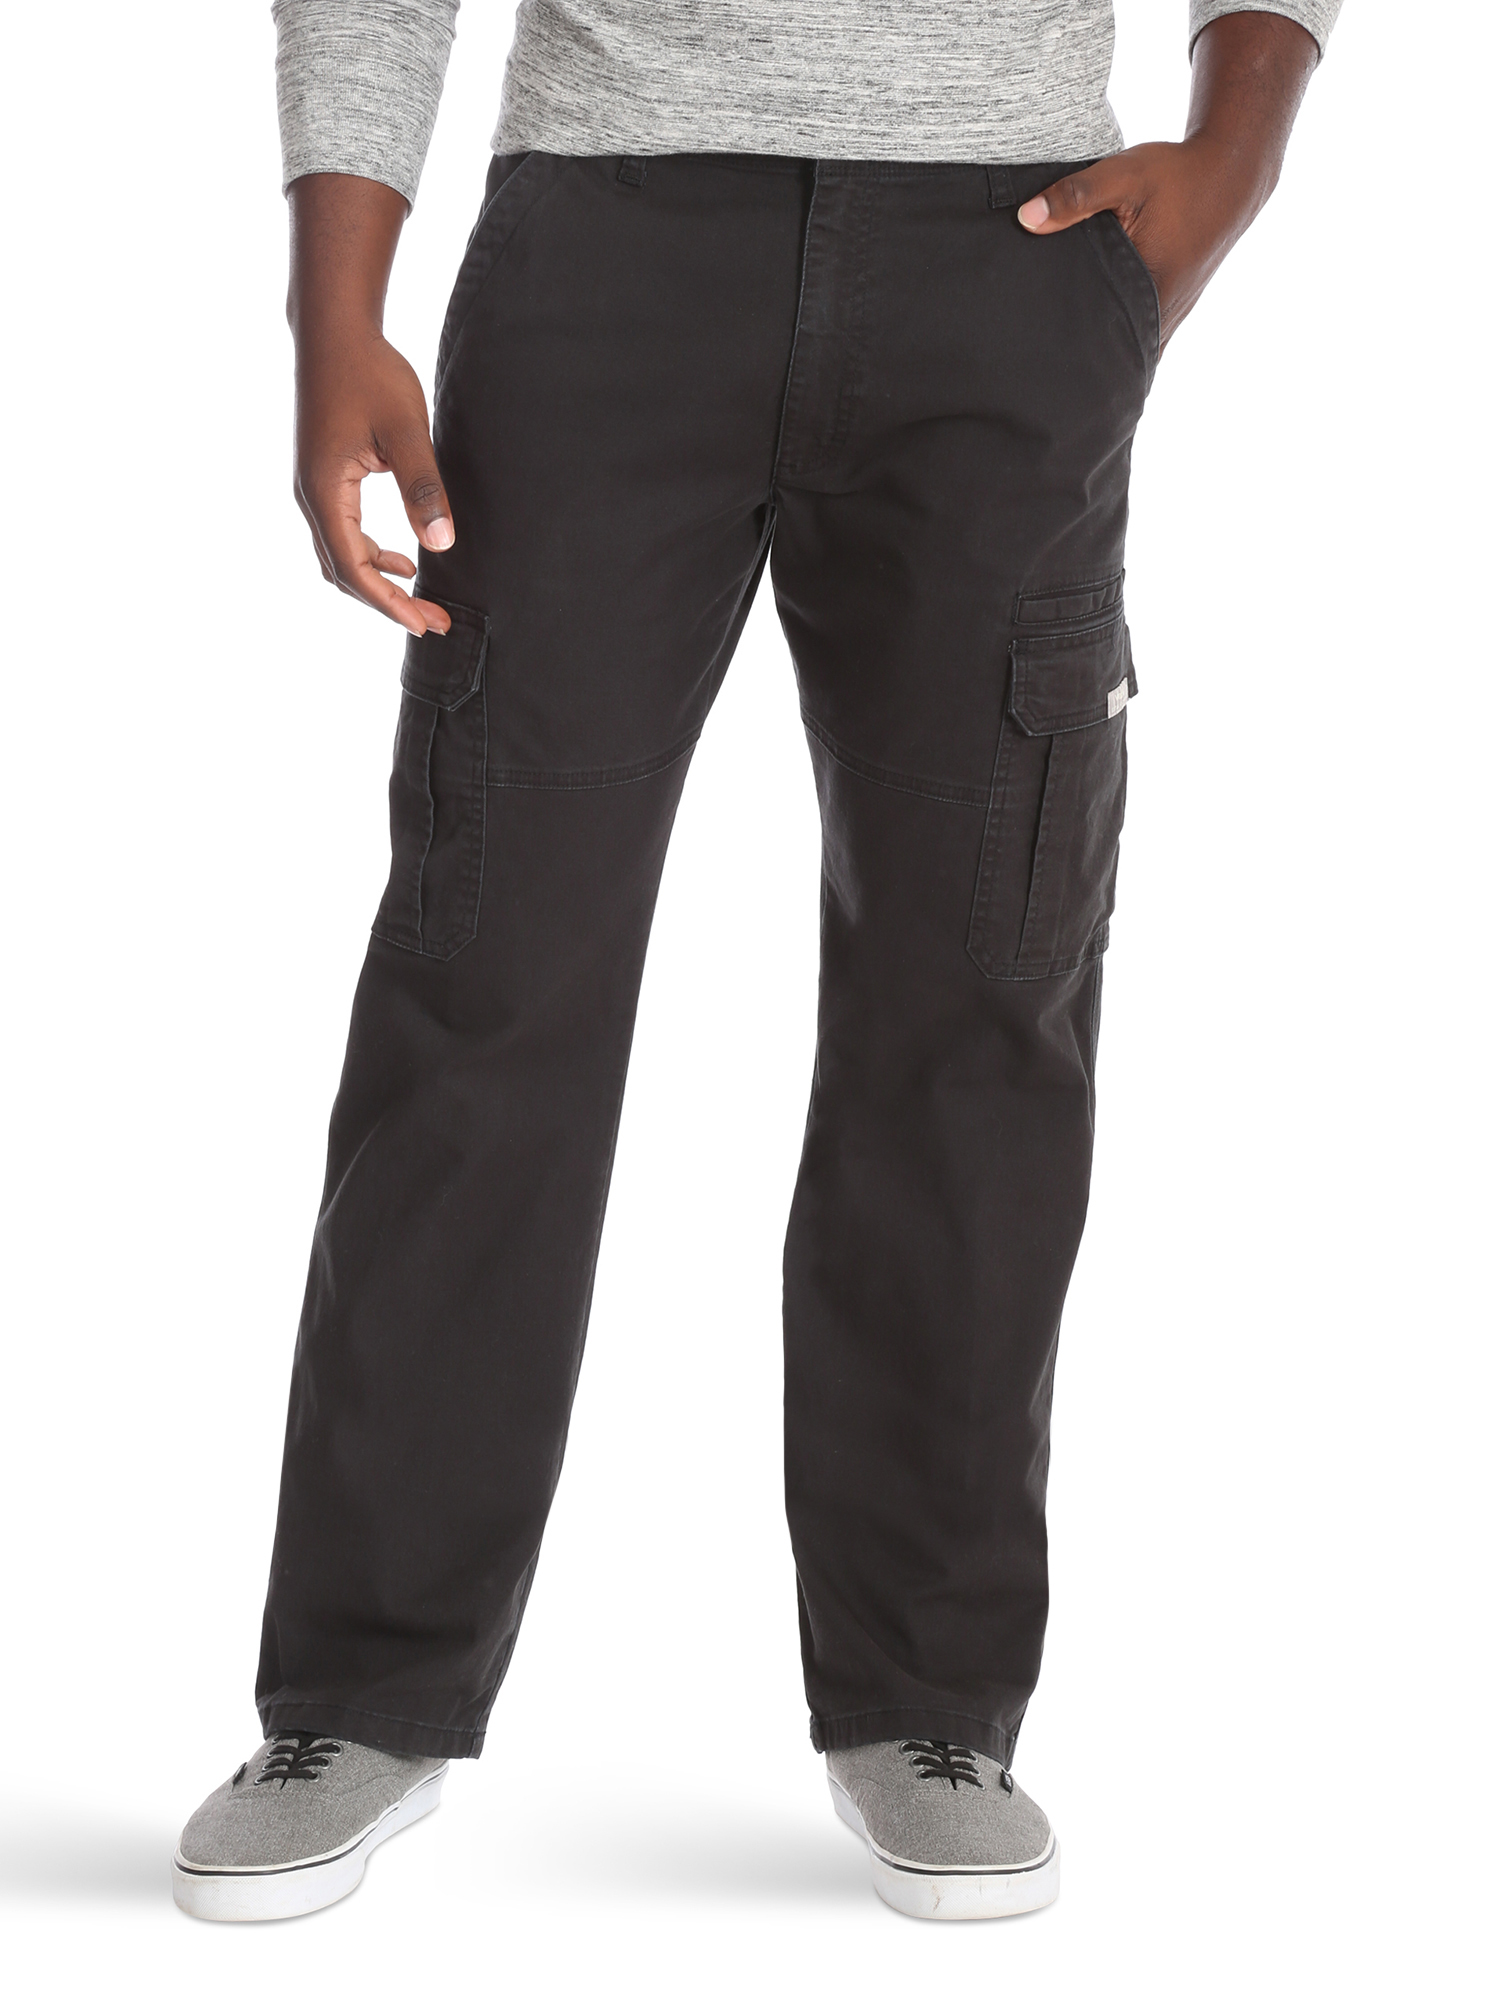 Big Men's Relaxed Fit Cargo Pant with Stretch